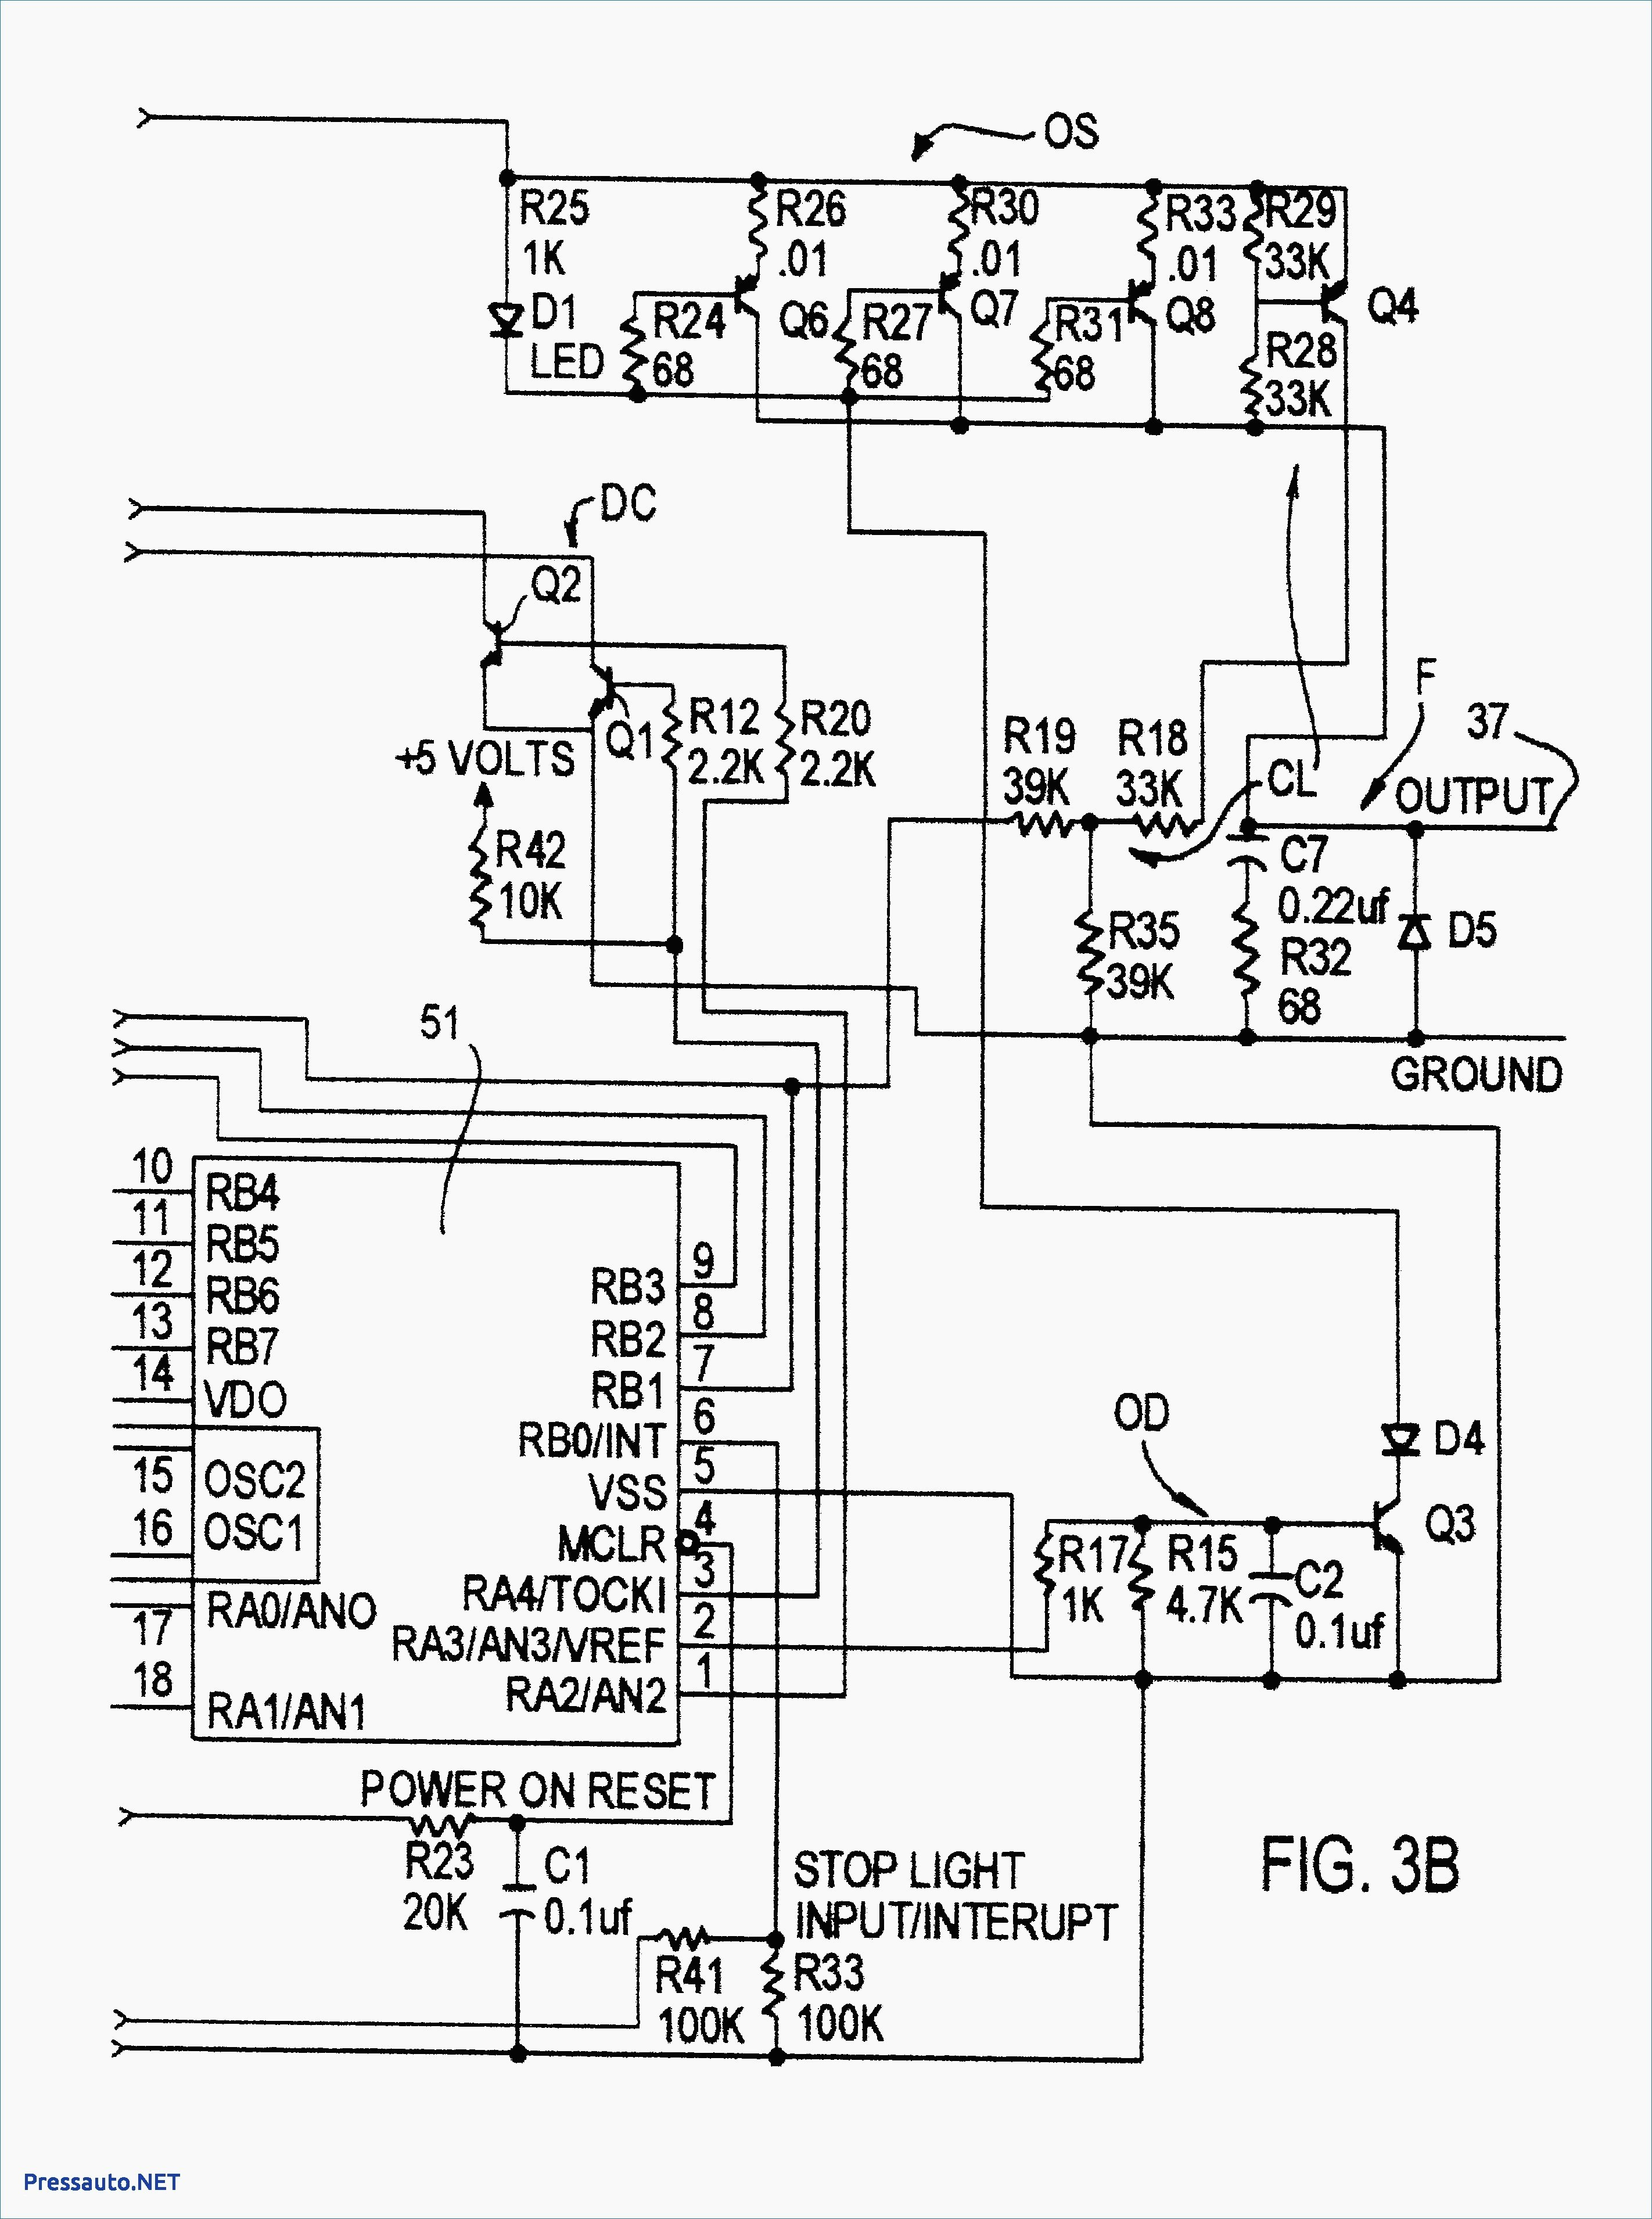 Xtreme Xb 600 Wiring Diagram Free Download Schematic 13 Amp Plug Top Bs1363 Stevenson Plumbing Electrical Supplies X Treme Scooters Diagrams Enthusiast U2022 Rh Rasalibre Co